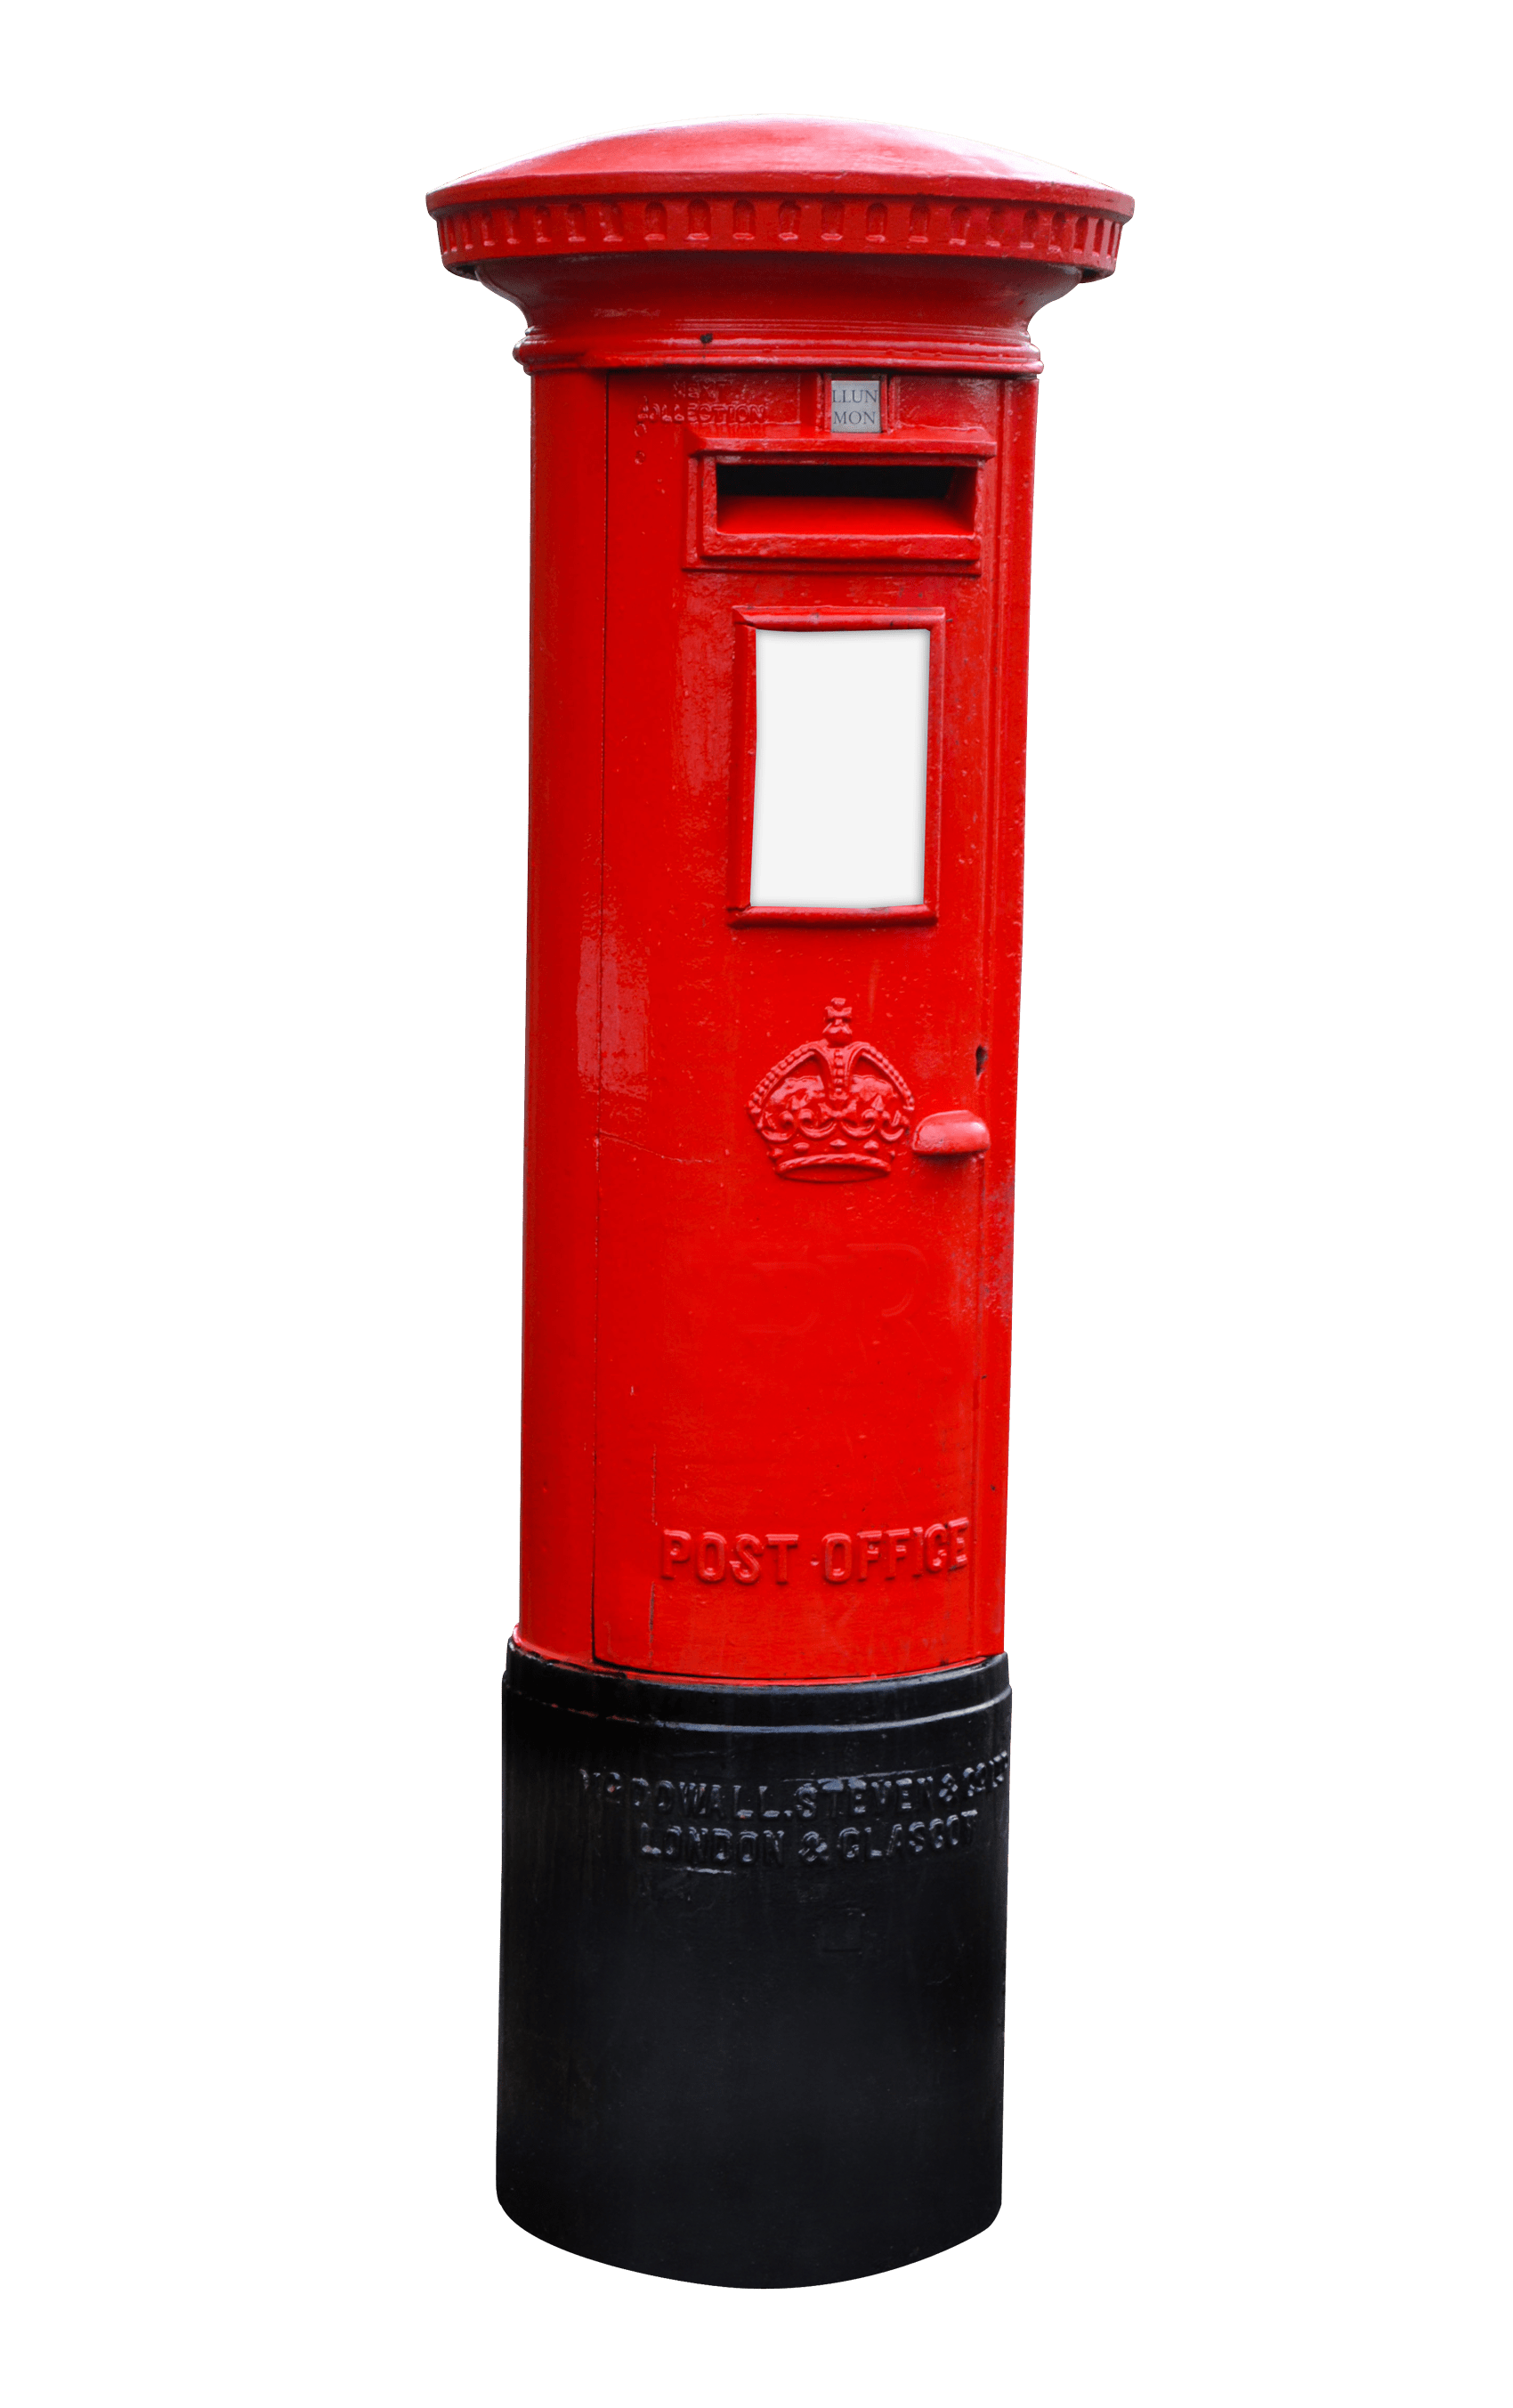 Royal mail post box. Mailbox clipart postbox